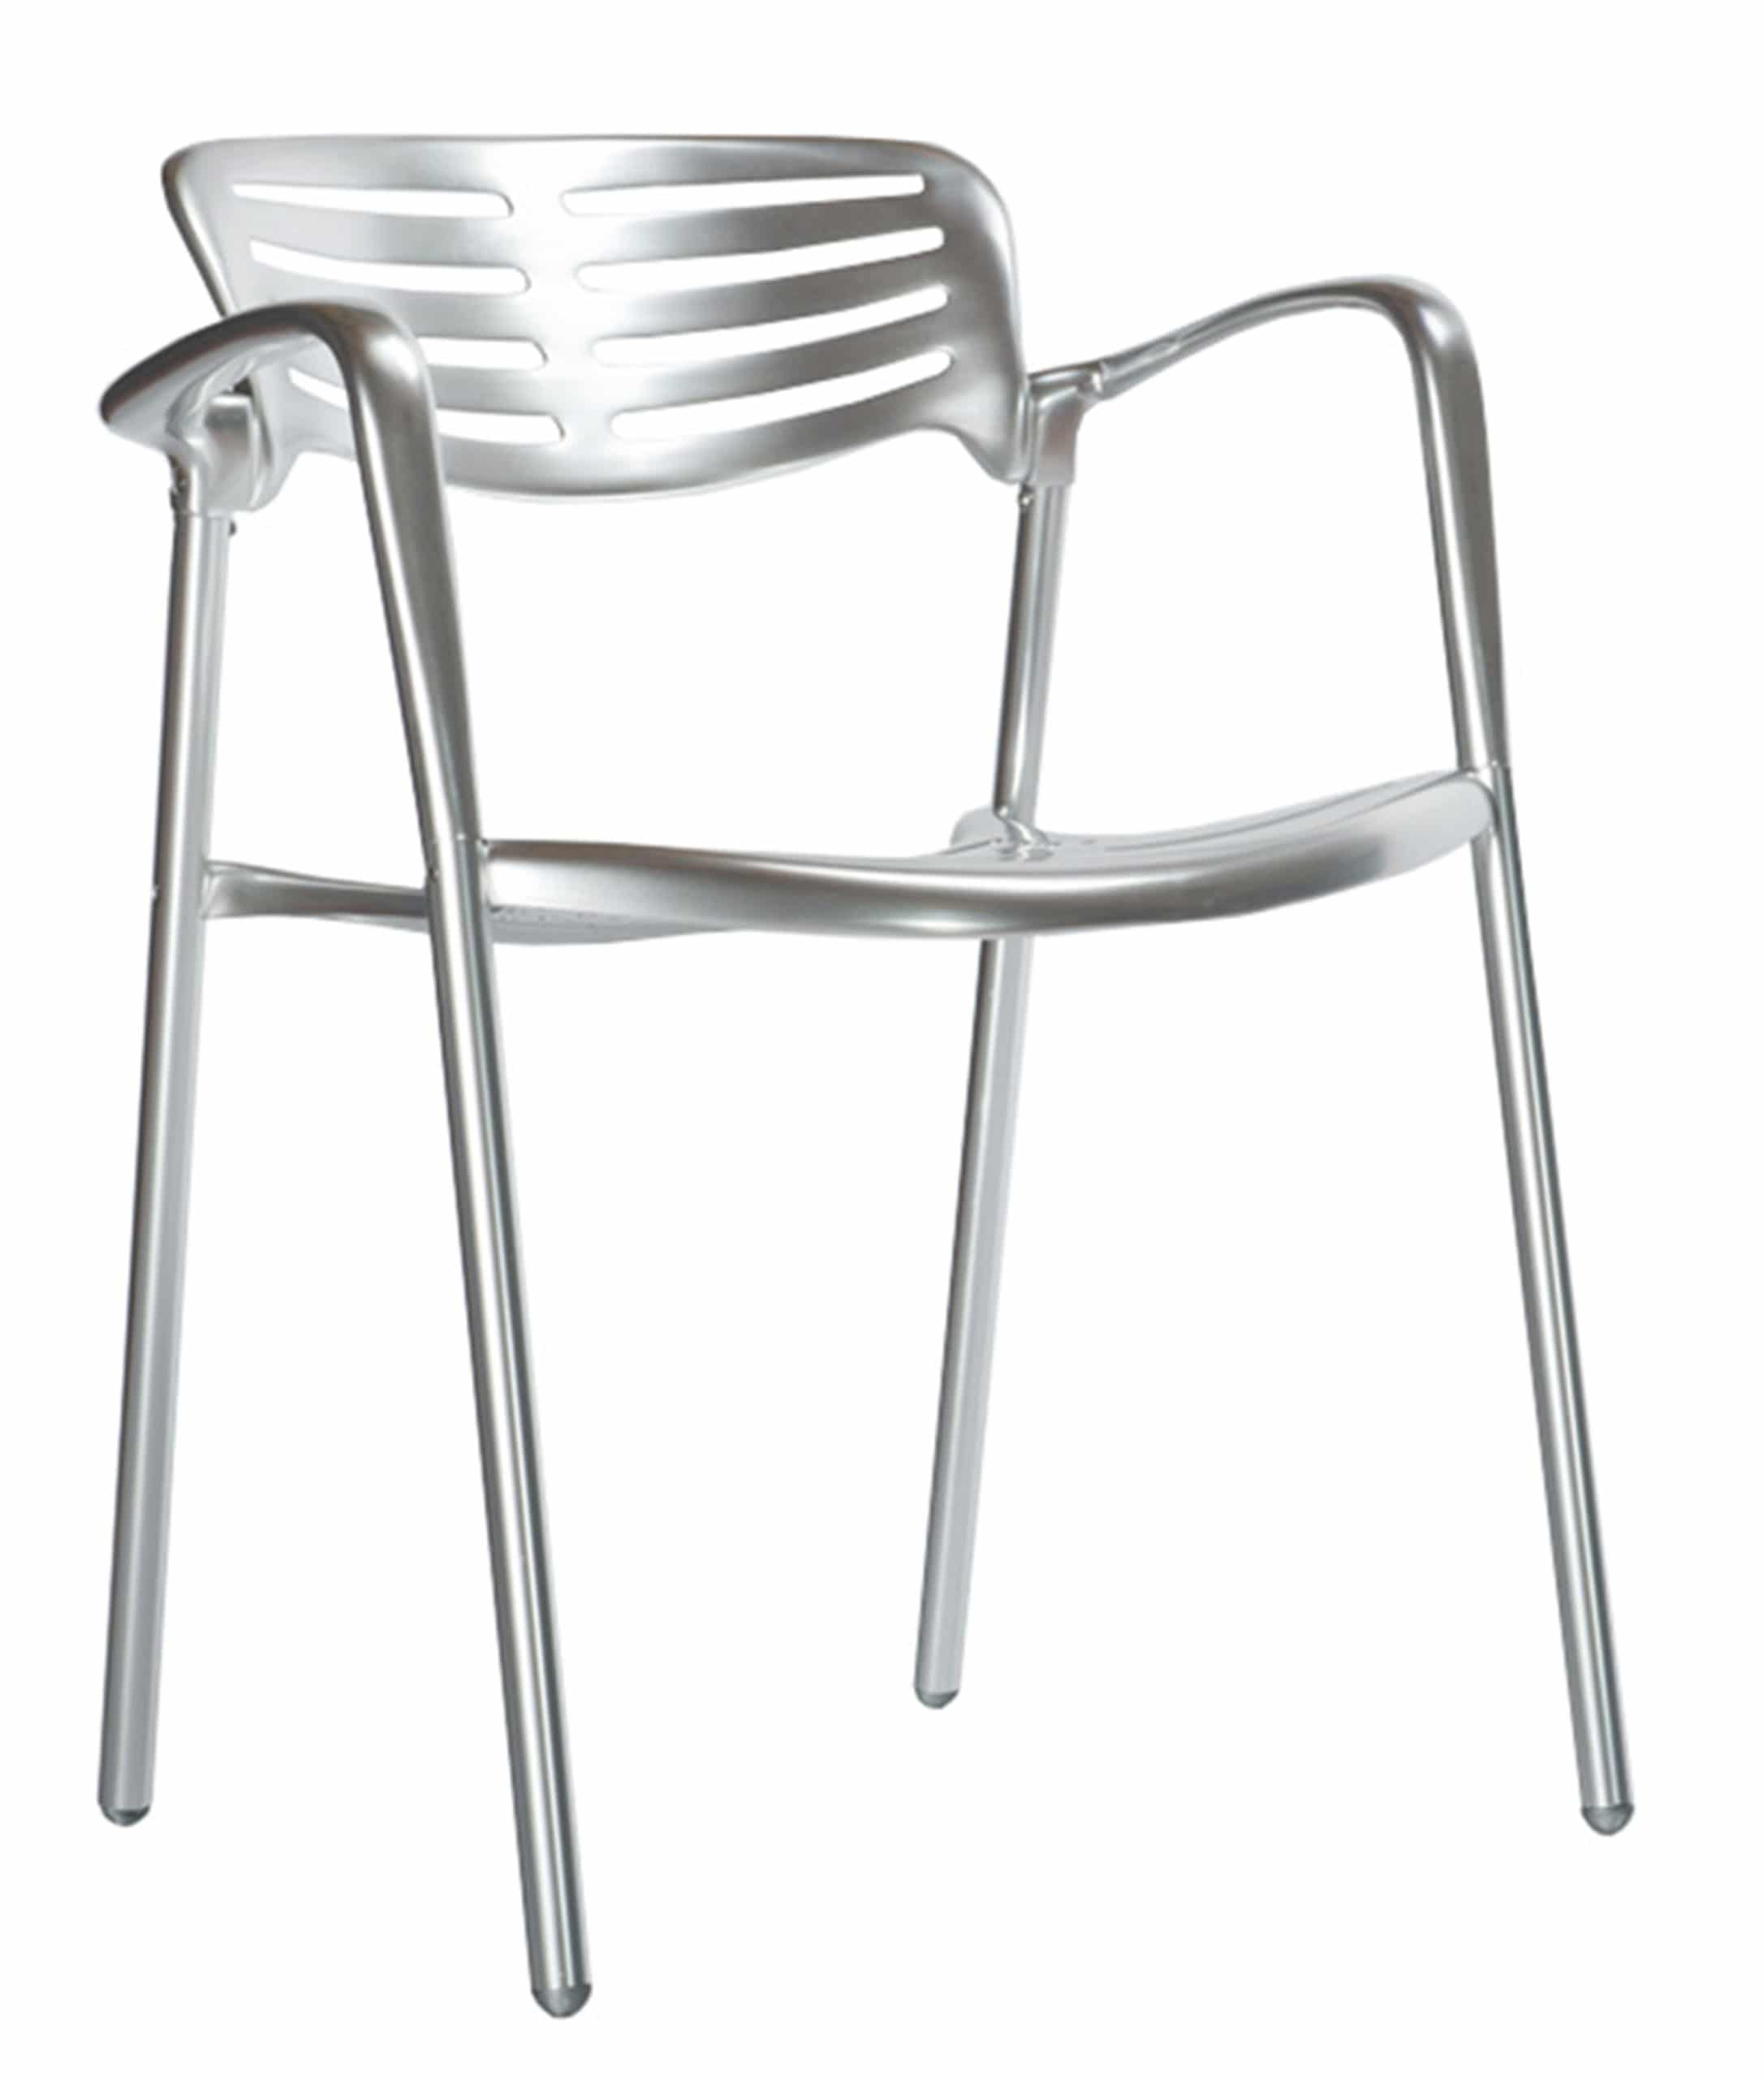 <p>Outdoor Furniture Contemporary Collection – Modesto Polished Aluminium Chair.</p> <p> </p> <p>Chair for indoor and outdoor use available in a polished aluminium, timeless hospitality and catering classic, capturing essential features such as lightness, functionality, ergonomics and care for the environment.</p>